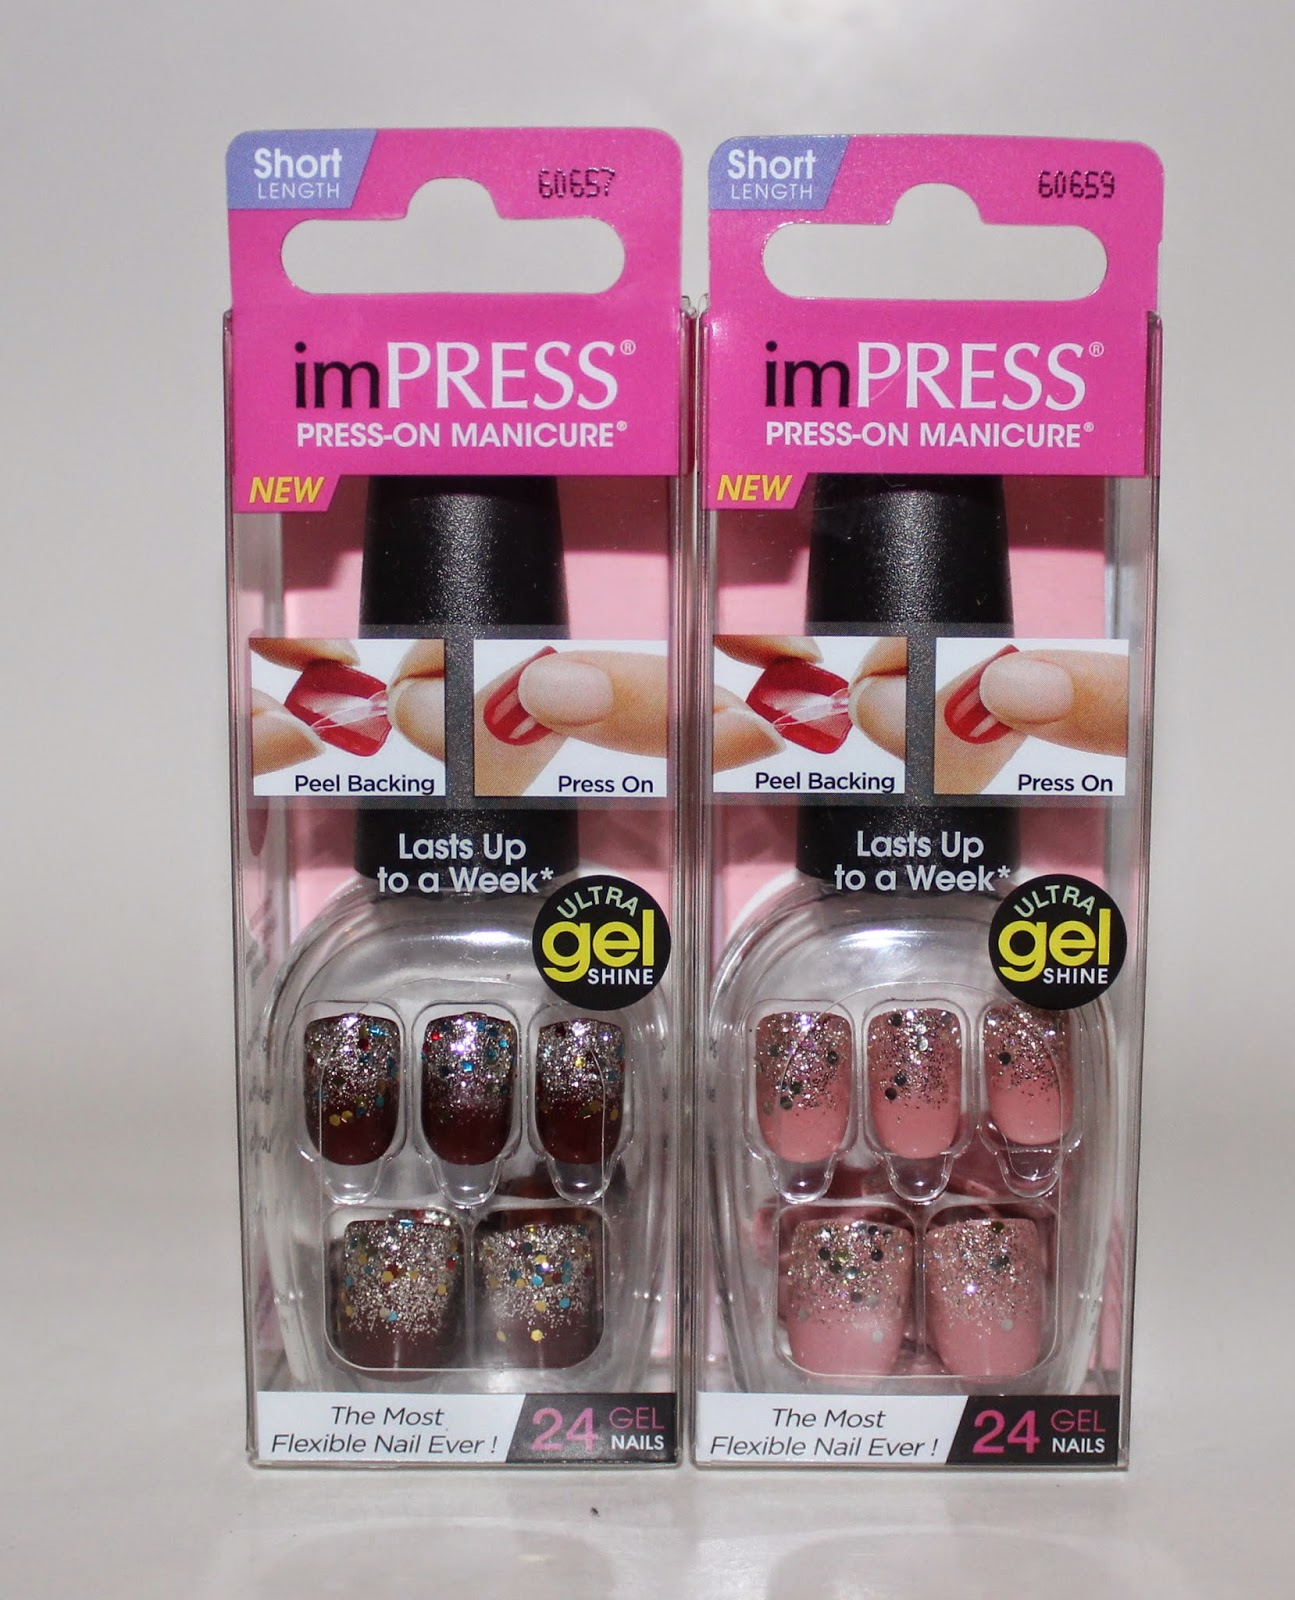 ImPress Press-On Manicure in Glitz & Glamour